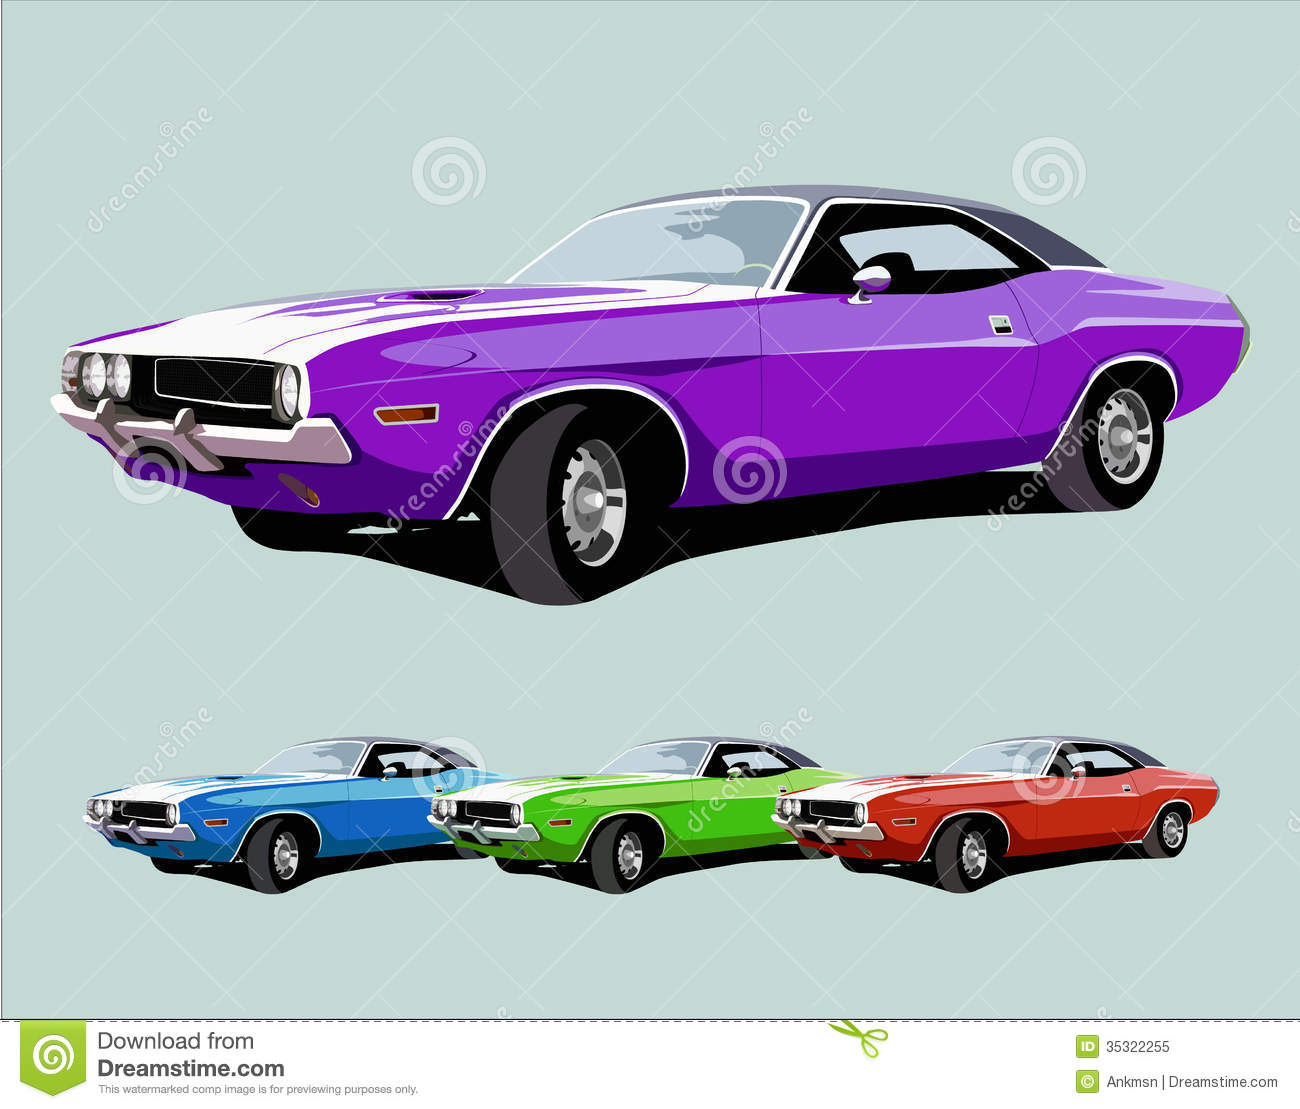 Hot American Muscle Car Stock Vector Illustration Of Chrome 35322255